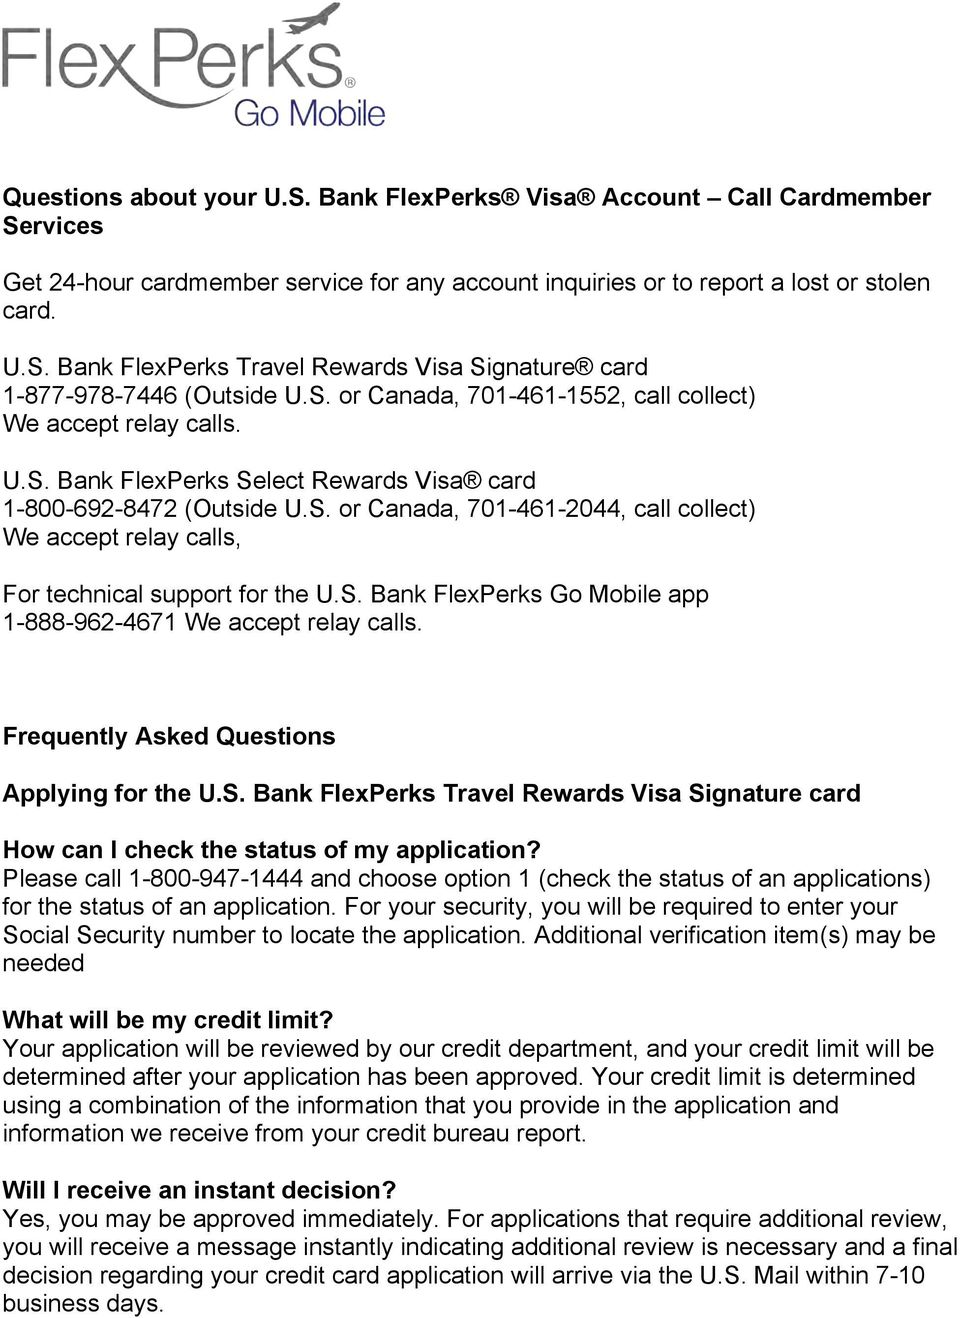 S. Bank FlexPerks Go Mobile app 1-888-962-4671 We accept relay calls. Frequently Asked Questions Applying for the U.S. Bank FlexPerks Travel Rewards Visa Signature card How can I check the status of my application?